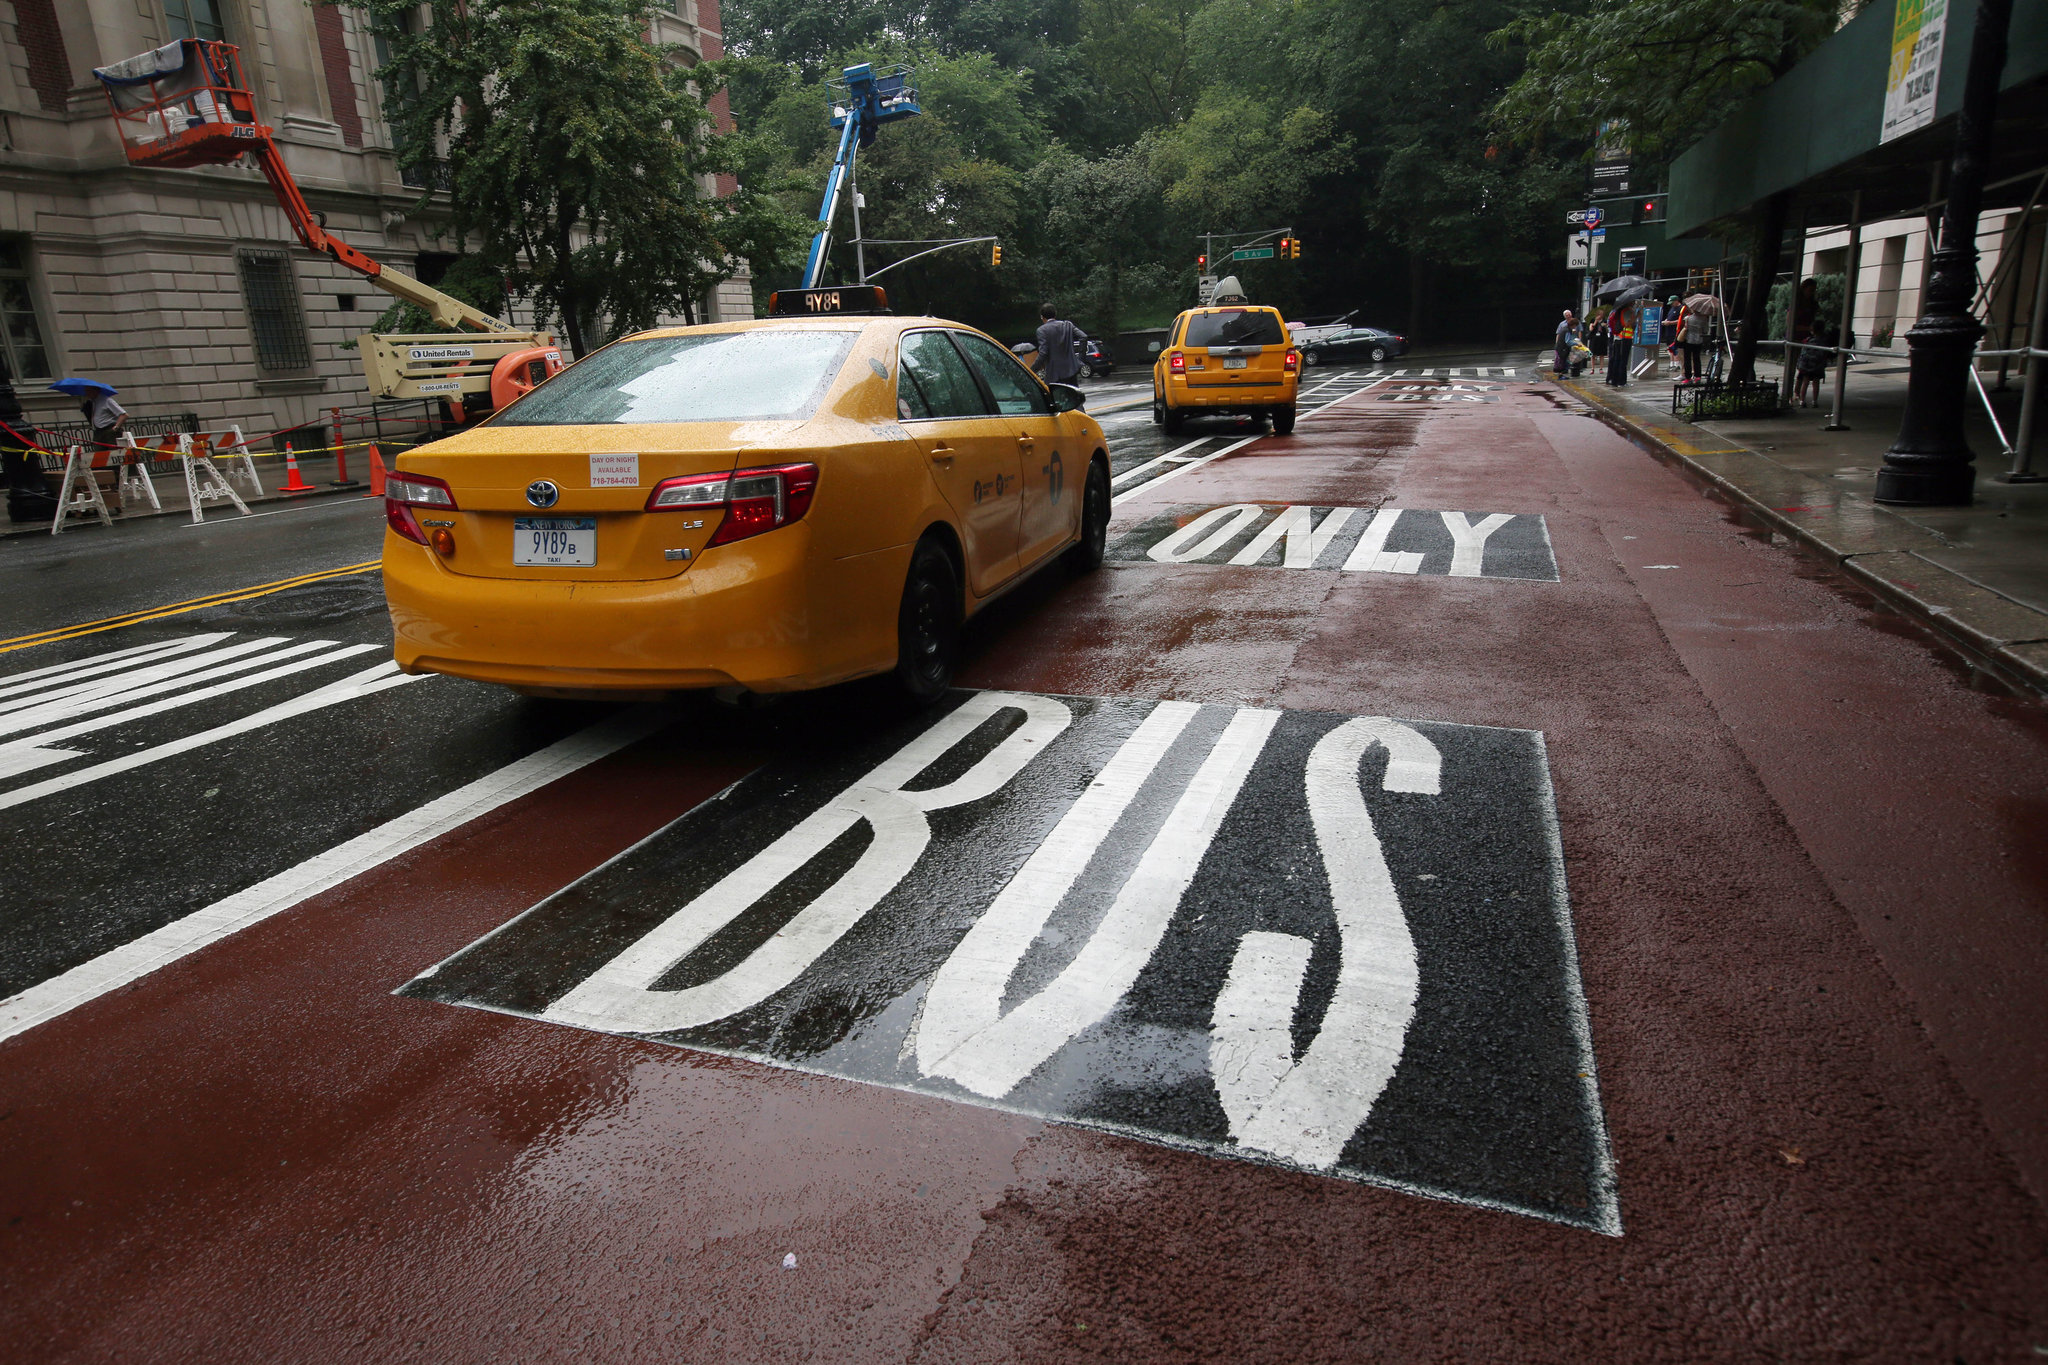 Bus-only lane in New York City